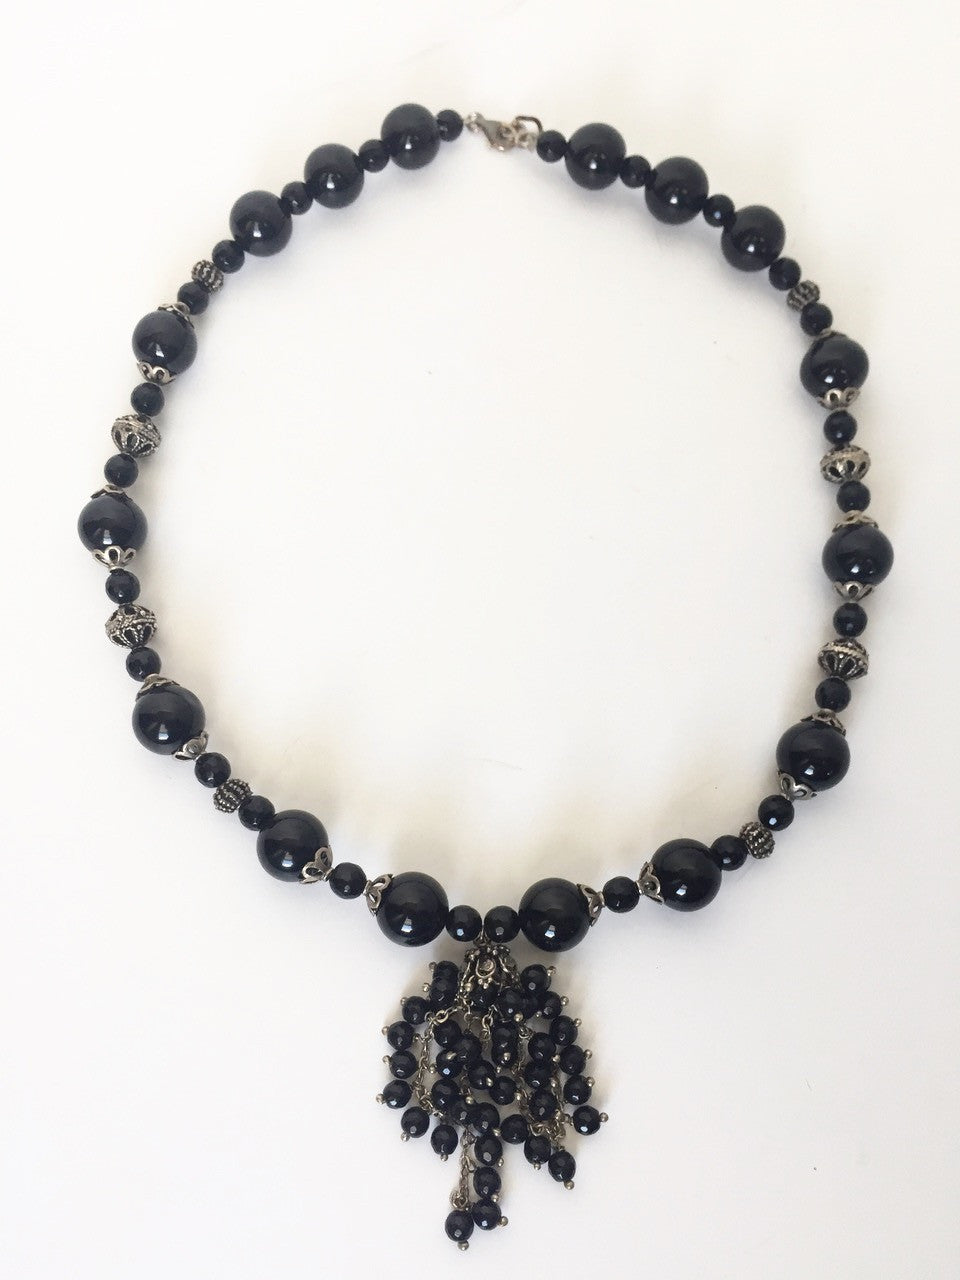 Handmade Black Beaded Statement Necklace